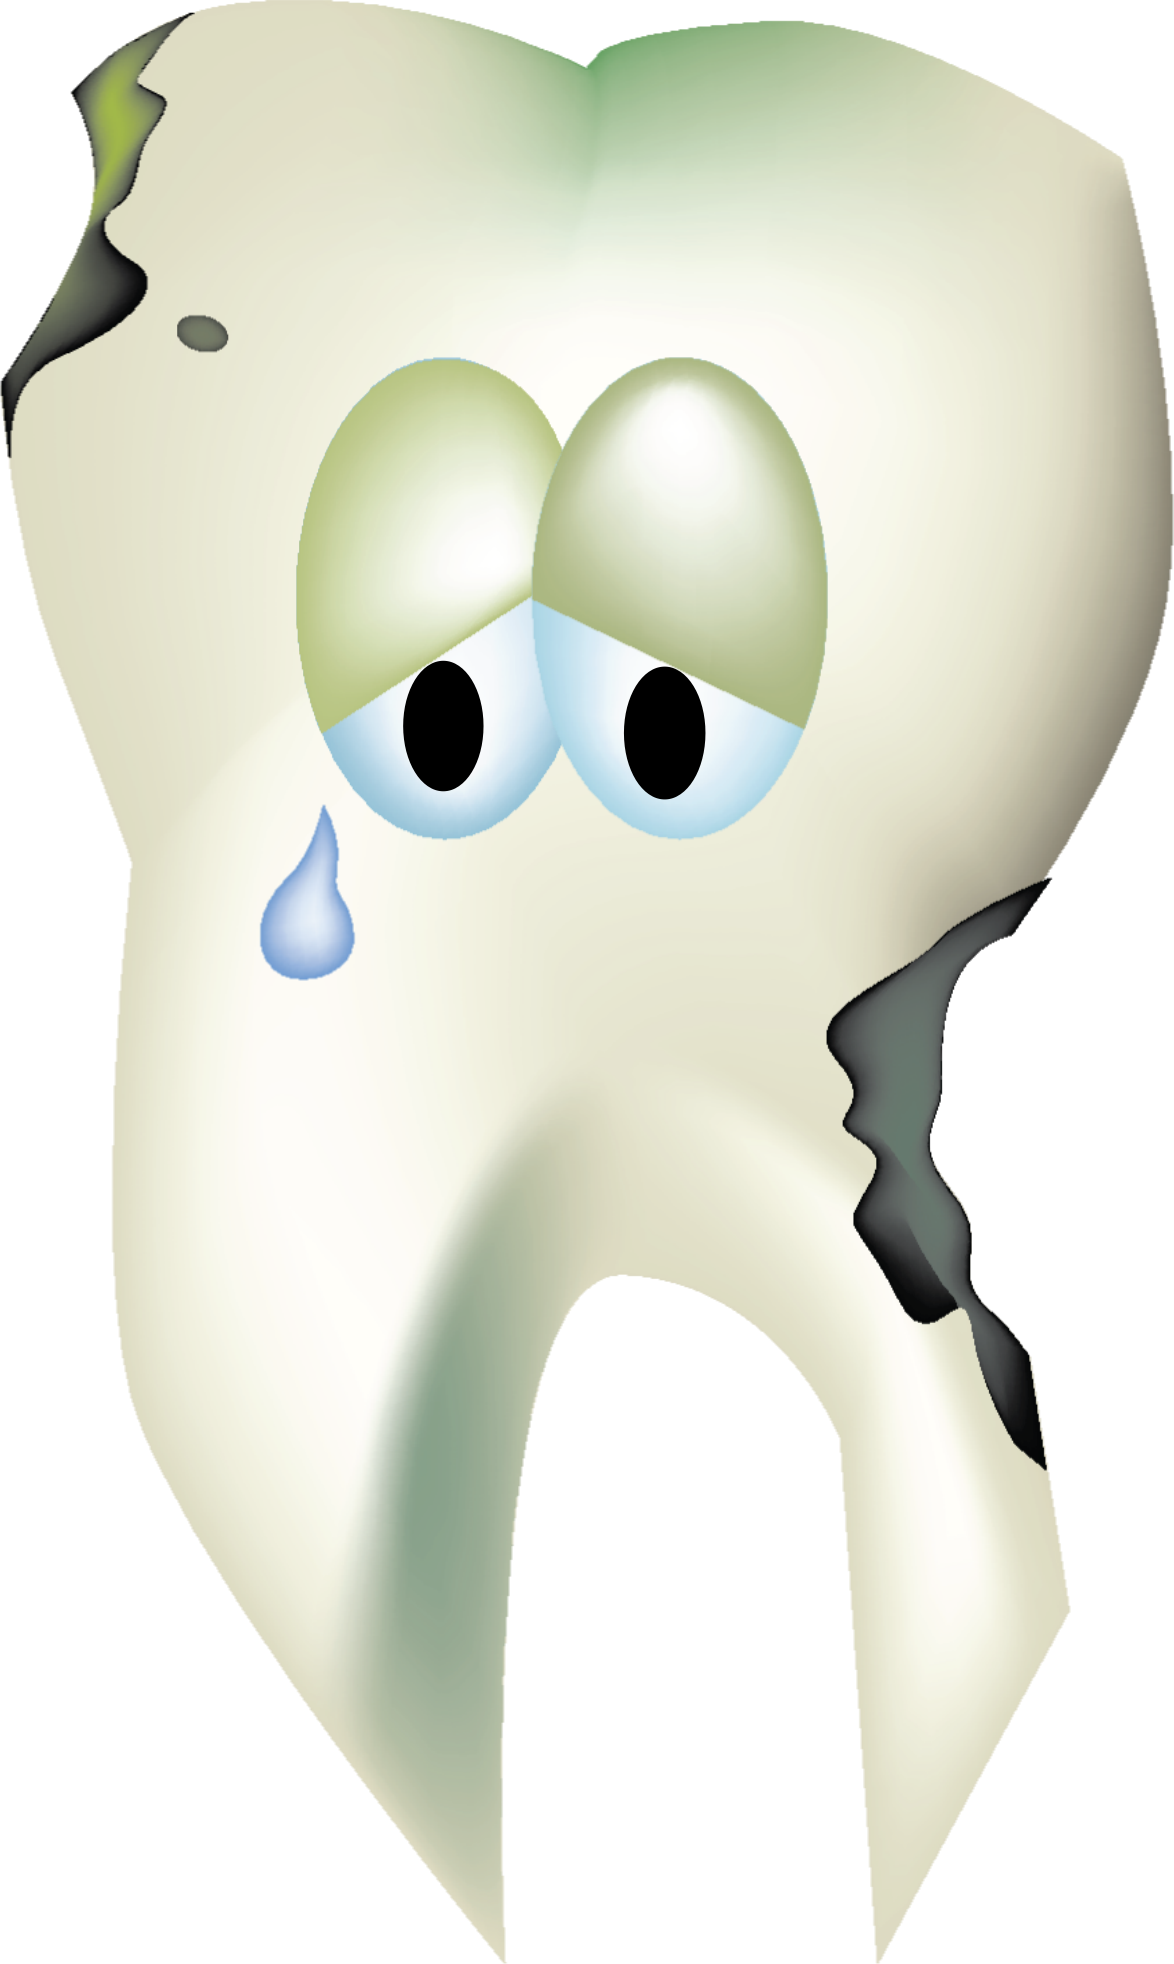 Tooth clipart png. Sad decaying big image